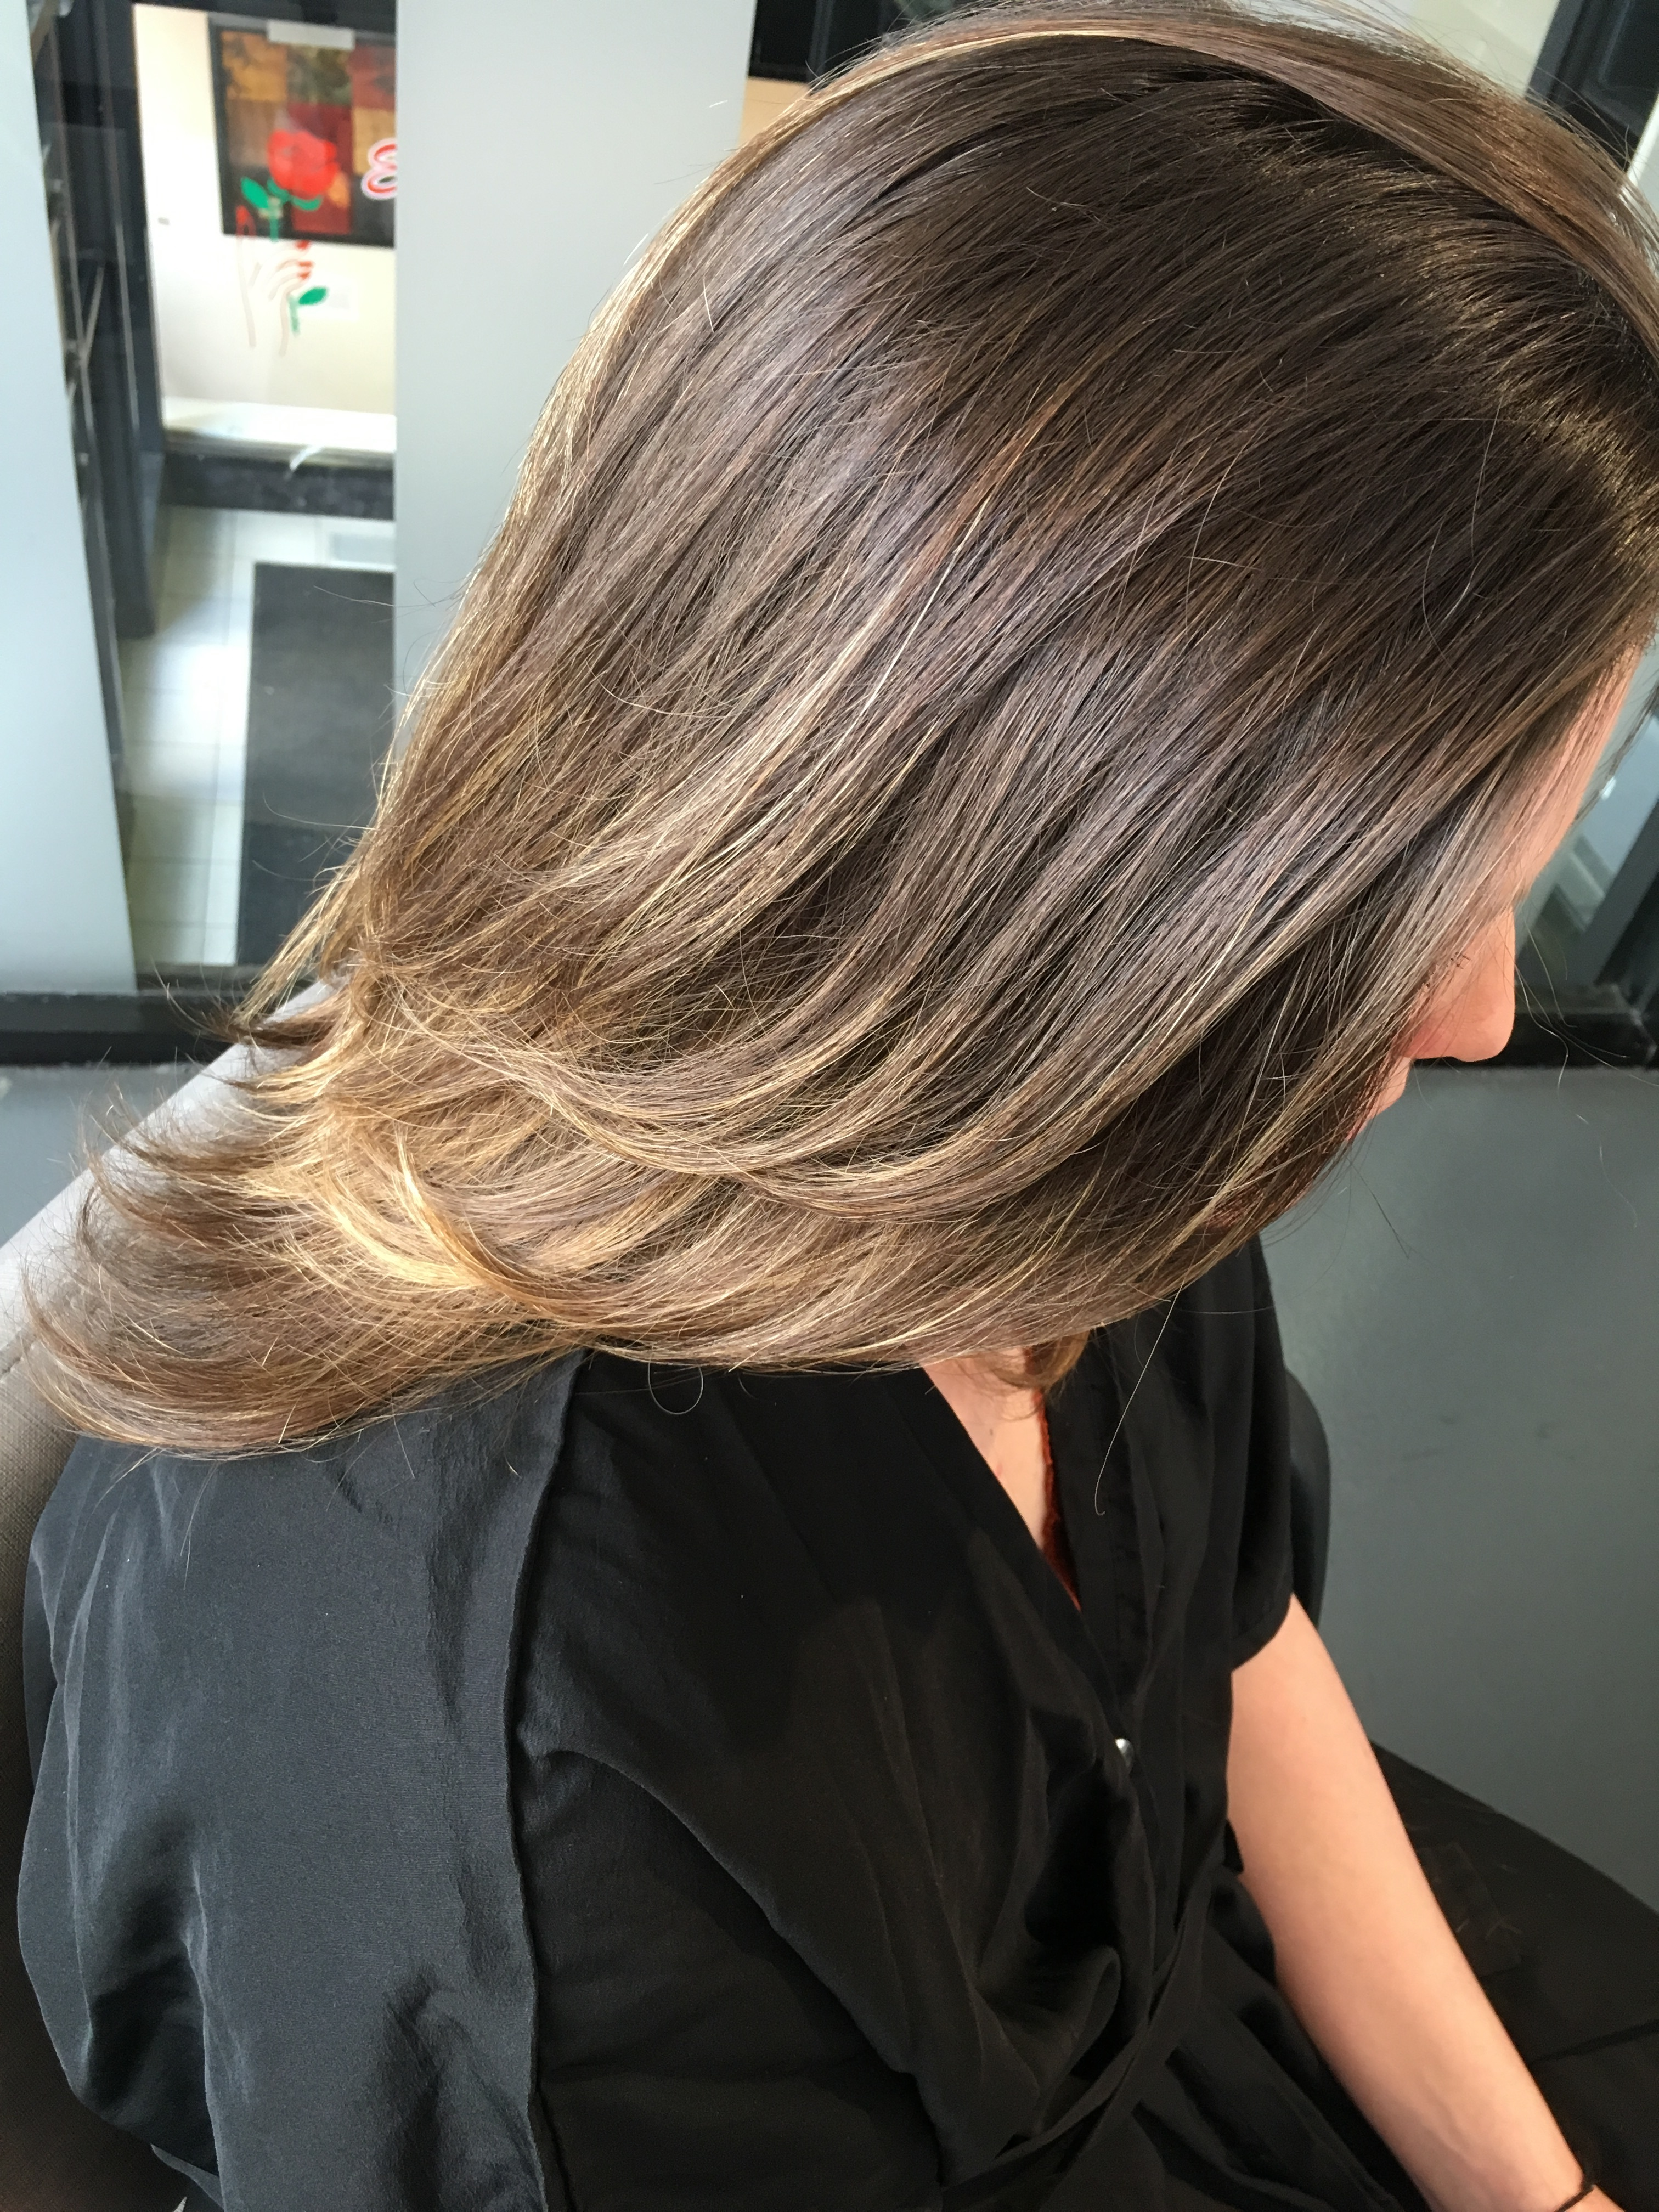 Best Hair Salon In Chicago Make An Appointmentafter Big Haircut 1